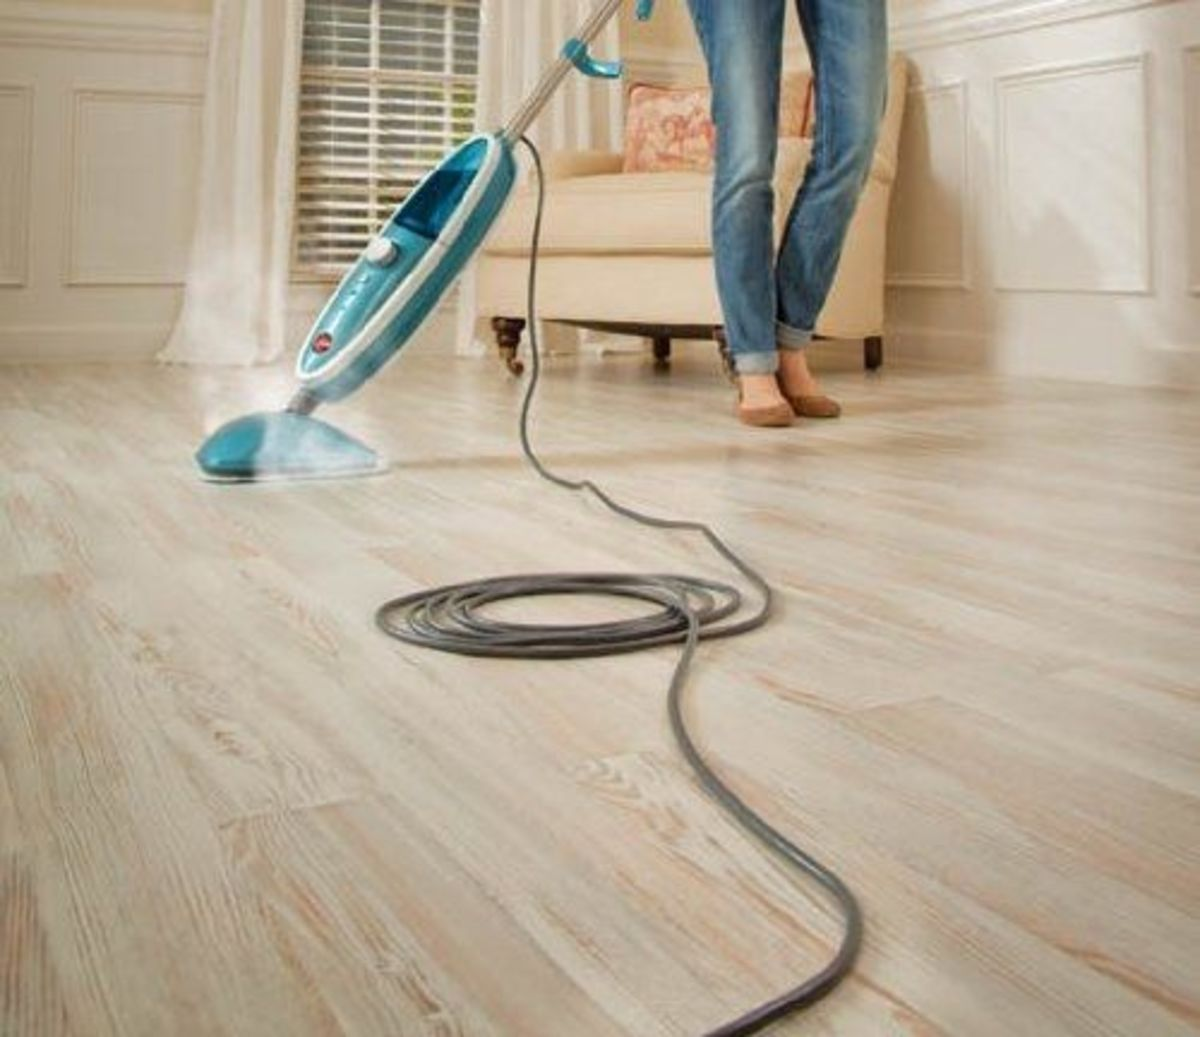 What Is The Best Way To Clean Laminate Wood Floors Dengarden - Clean laminate wood floors